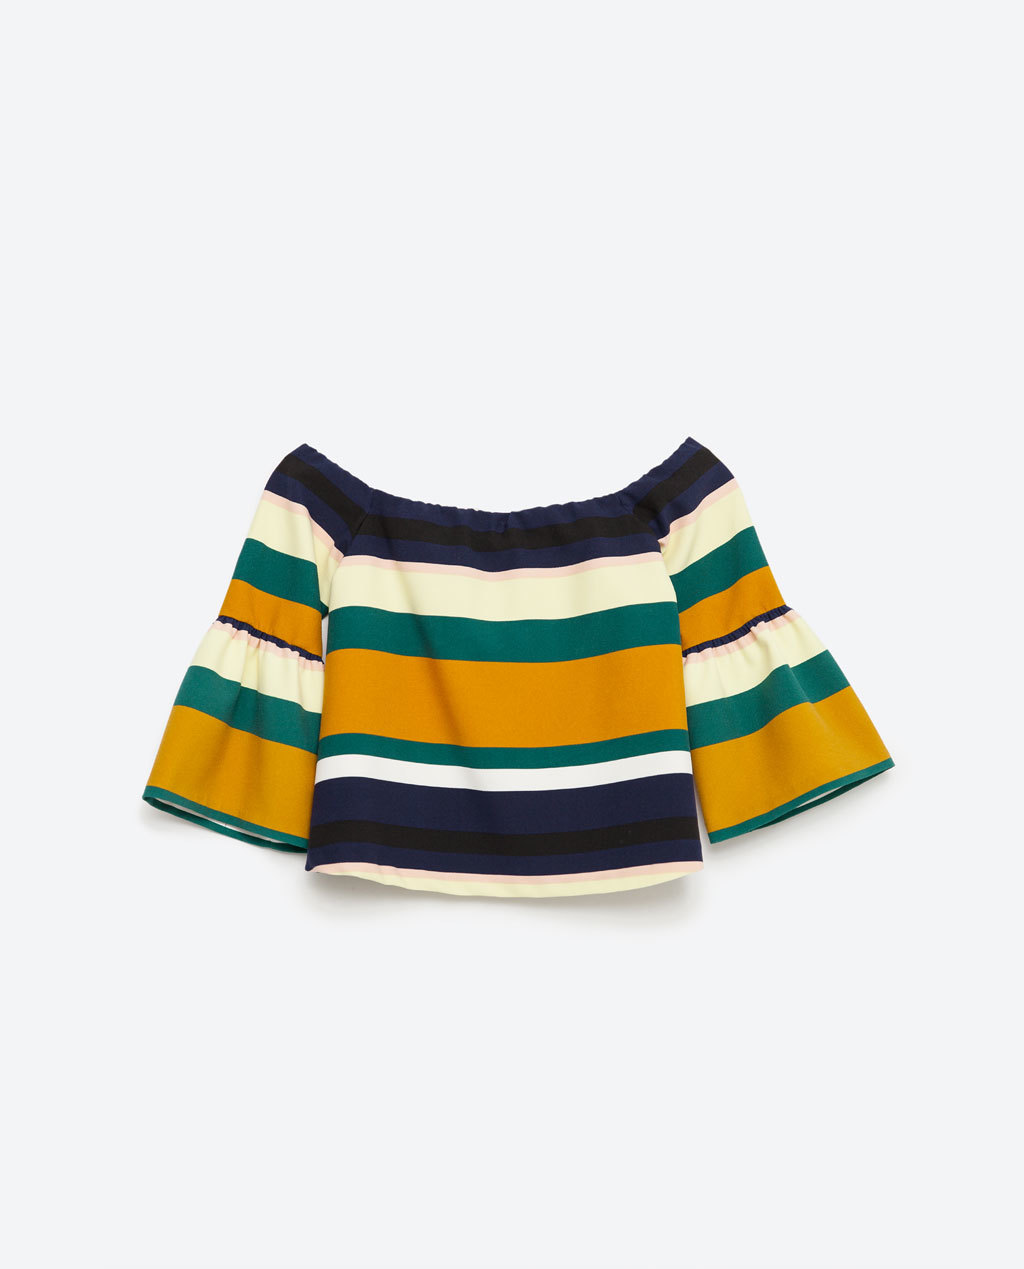 Striped Top - neckline: off the shoulder; sleeve style: bell sleeve; pattern: horizontal stripes; predominant colour: mustard; secondary colour: black; occasions: casual; length: standard; style: top; fibres: cotton - stretch; fit: body skimming; sleeve length: 3/4 length; pattern type: fabric; texture group: other - light to midweight; multicoloured: multicoloured; season: s/s 2016; wardrobe: highlight